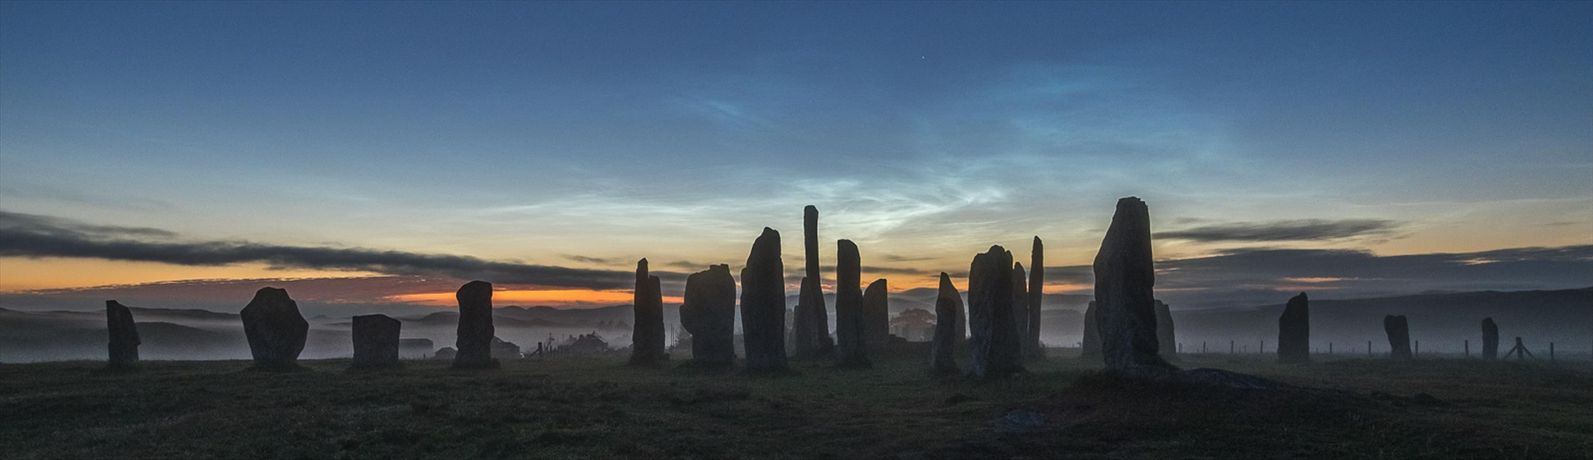 Emma Rennie, Misty Callanish standing stones and Noctilucent clouds